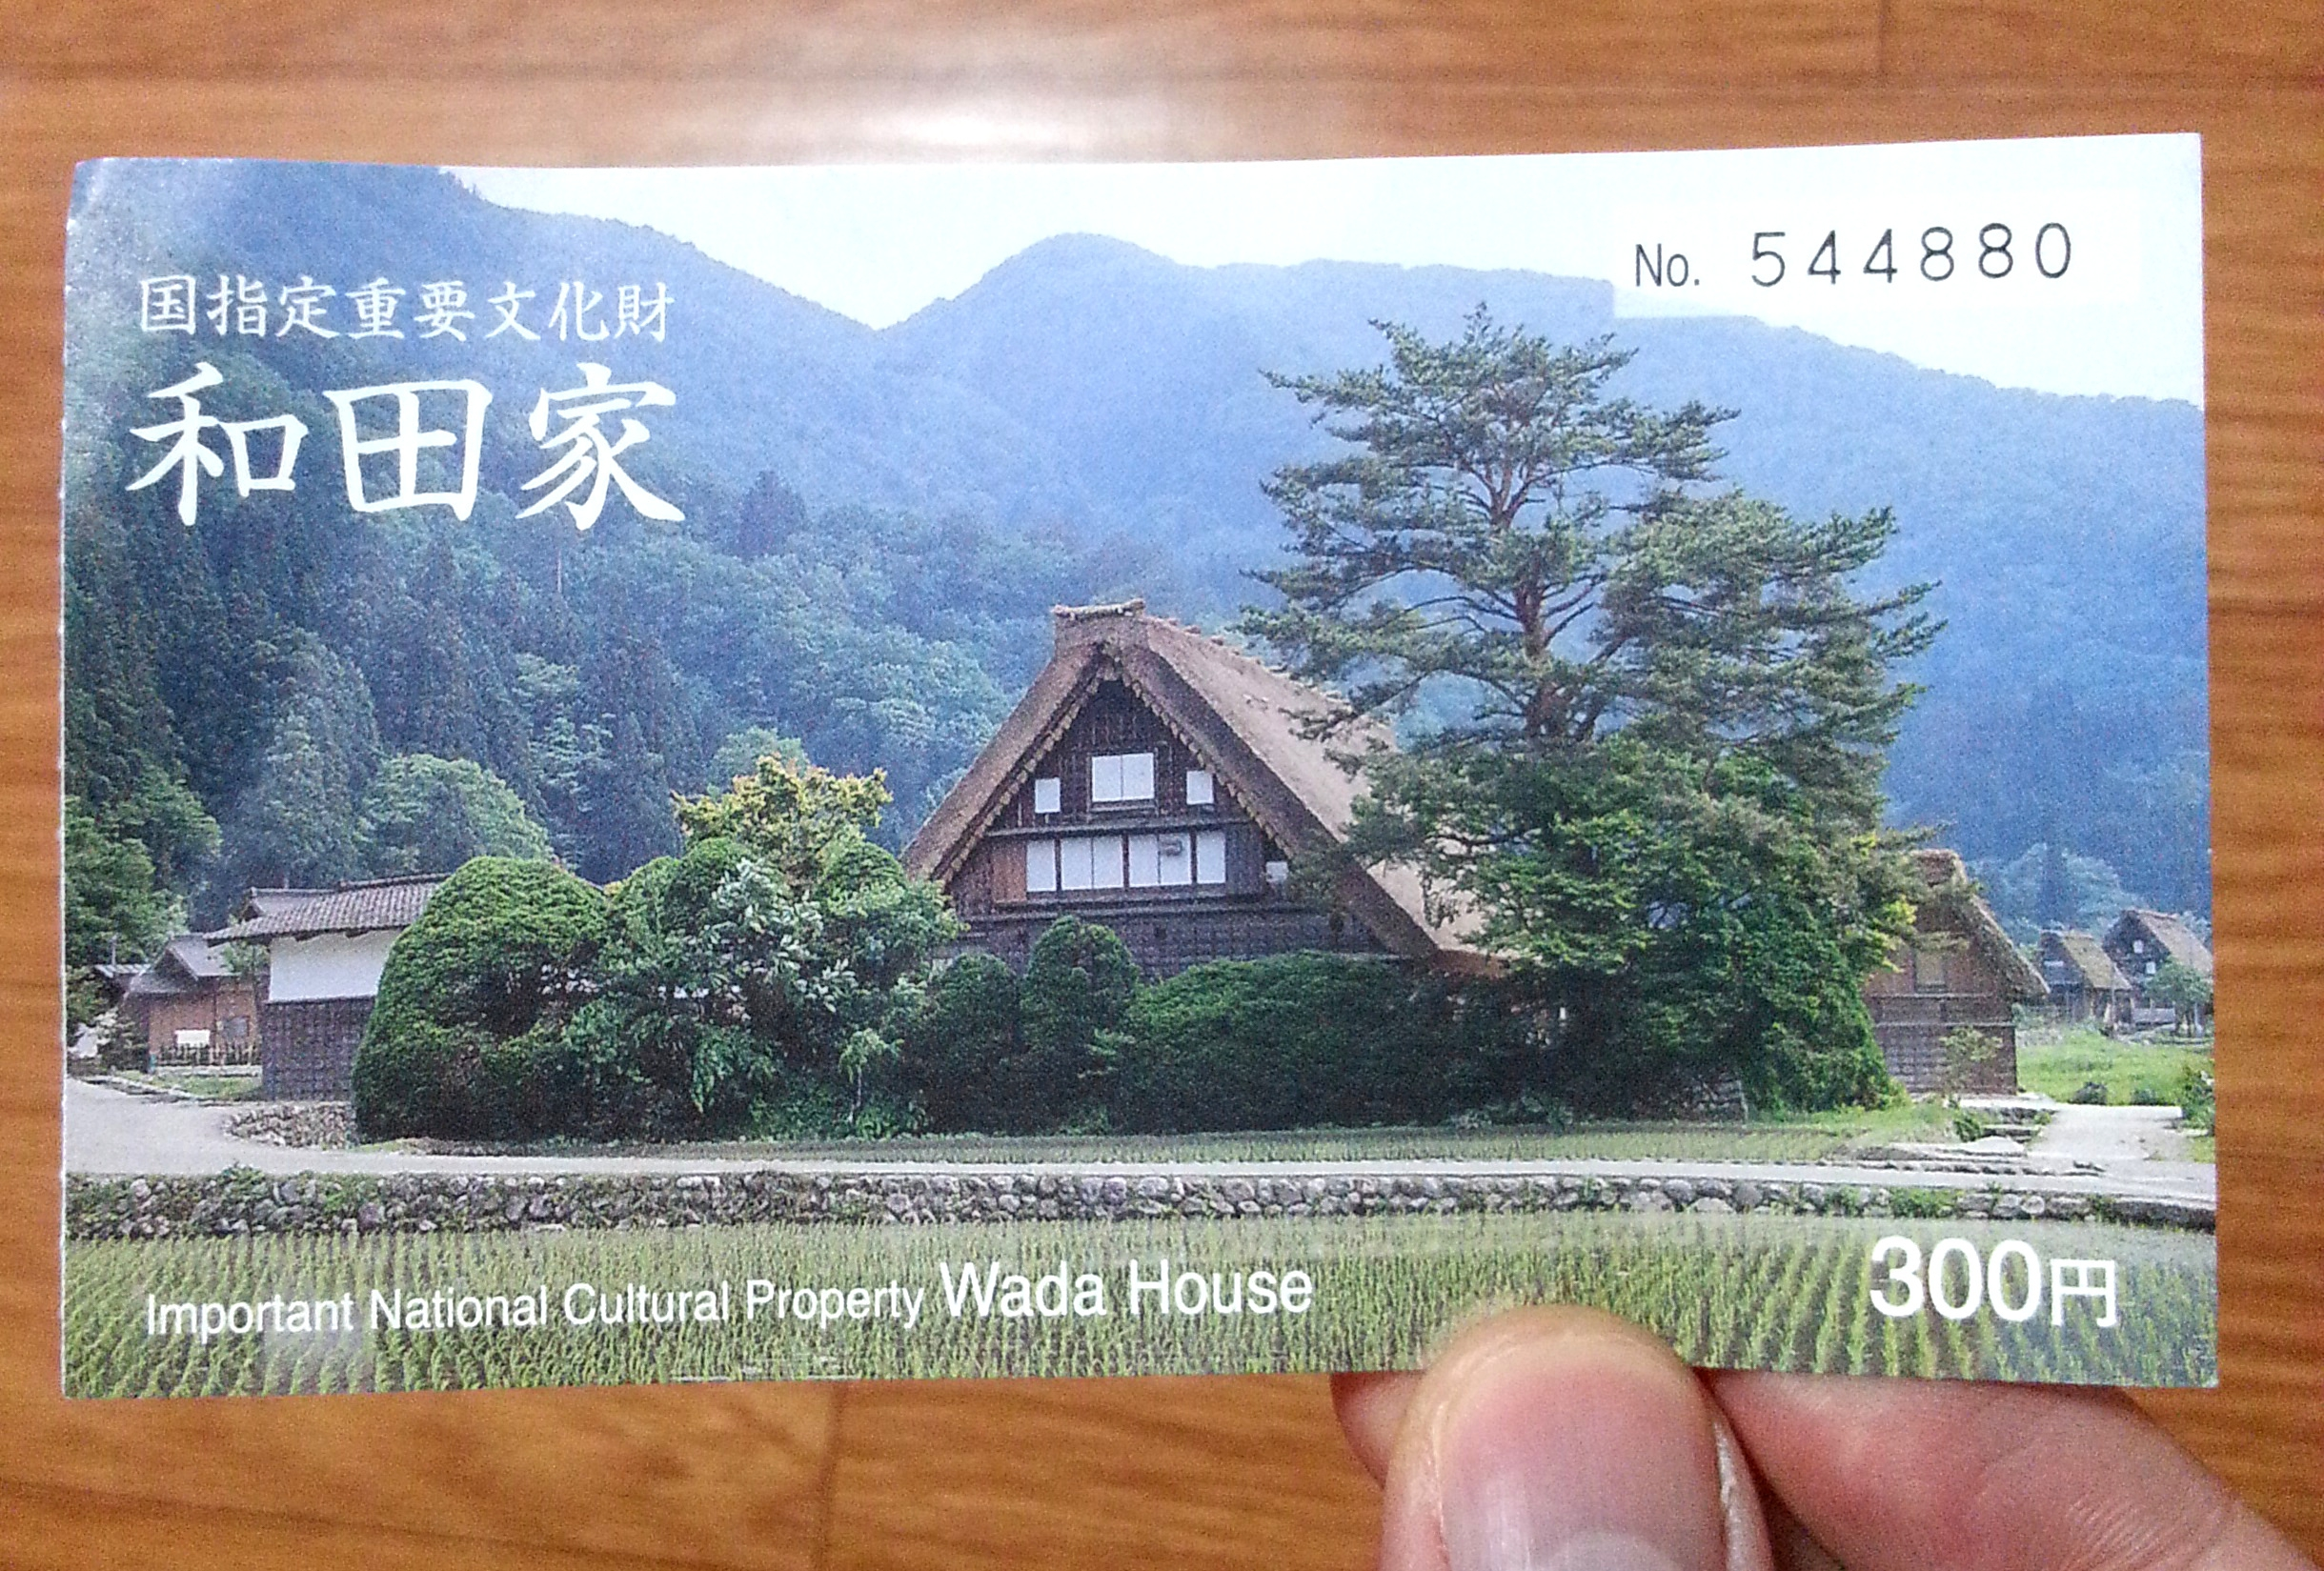 Gassho-style house entrance ticket in Shirakawa-go